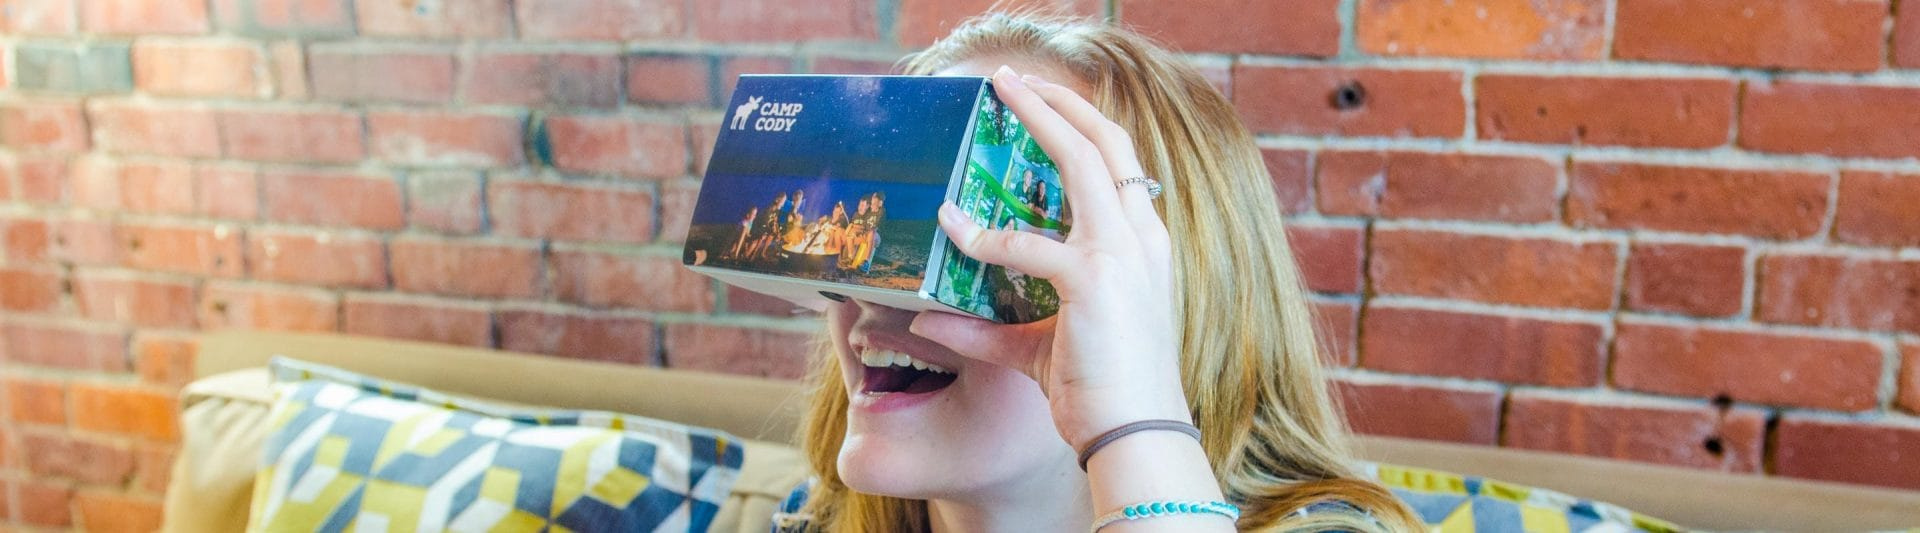 girl smiling while looking at a virtual tour box